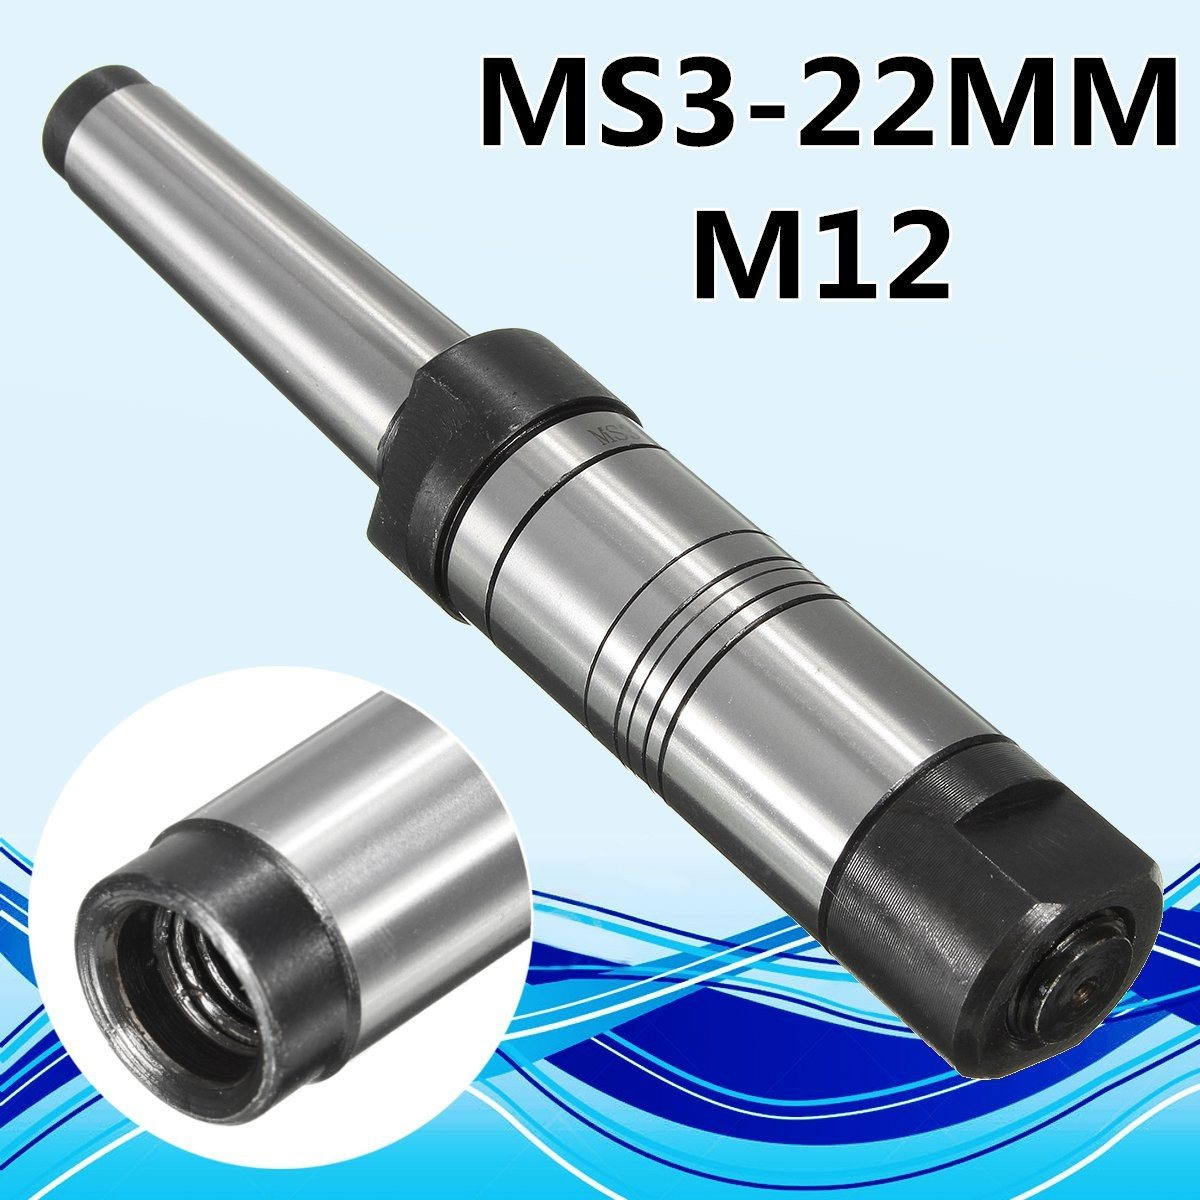 22mm MT3 Shank Milling Arbor Gear Milling Cutter Holder Morse Taper MS3 For 13mm Bore High Hardness 45 steel high hardness 45 steel 22mm milling arbor gear milling cutter tool holder no 3 morse taper ms3